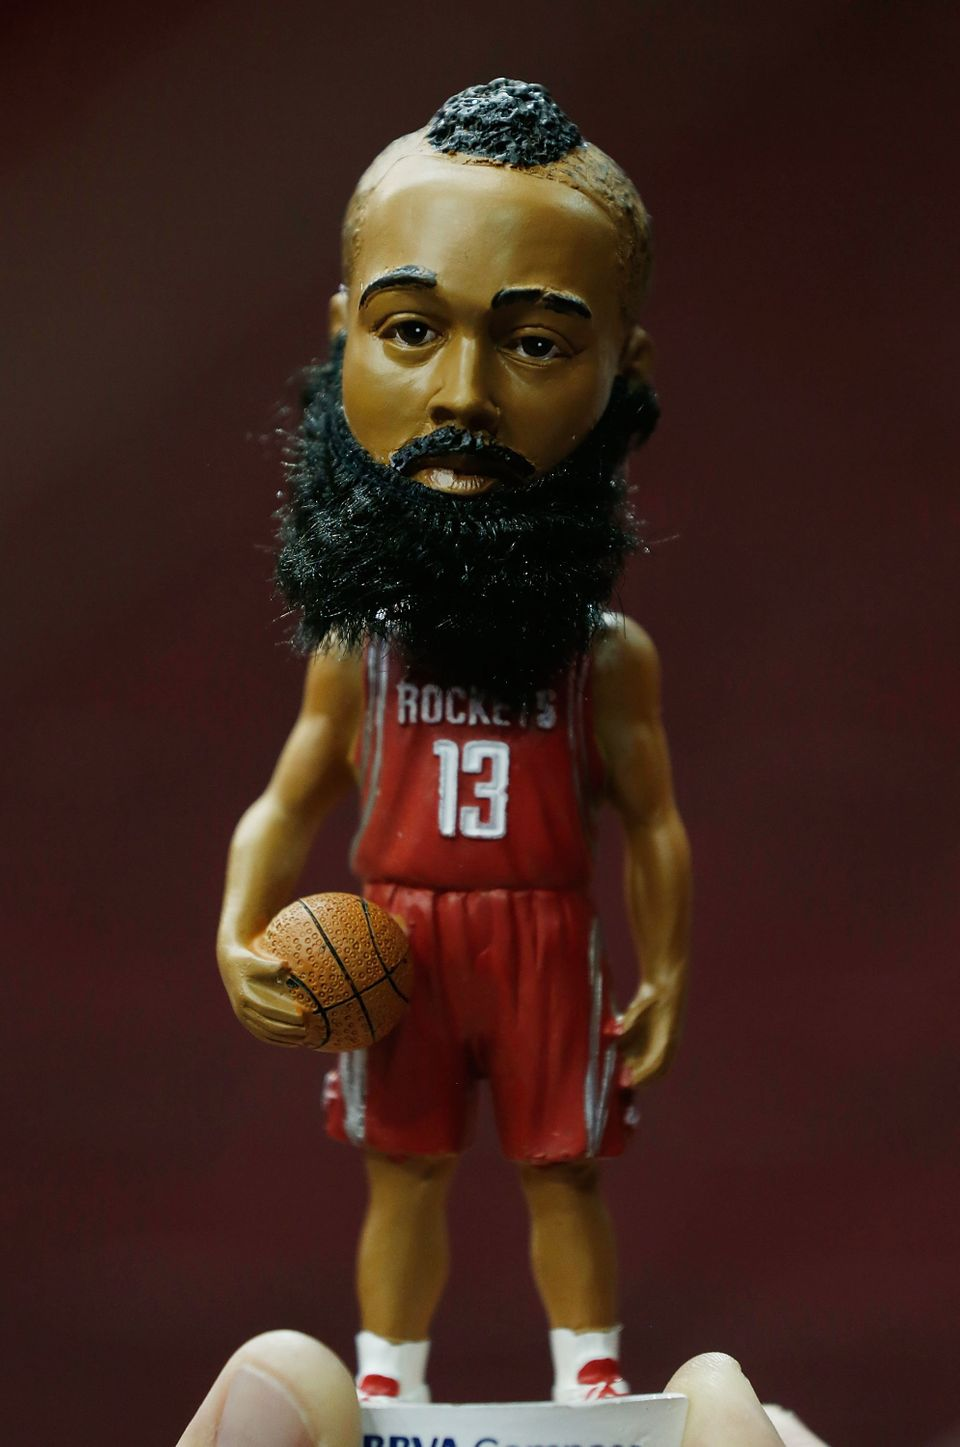 <strong>Beliefs: </strong> The bobblehead is the ideal representation of humanity. When we bobble our heads, we reach a highe